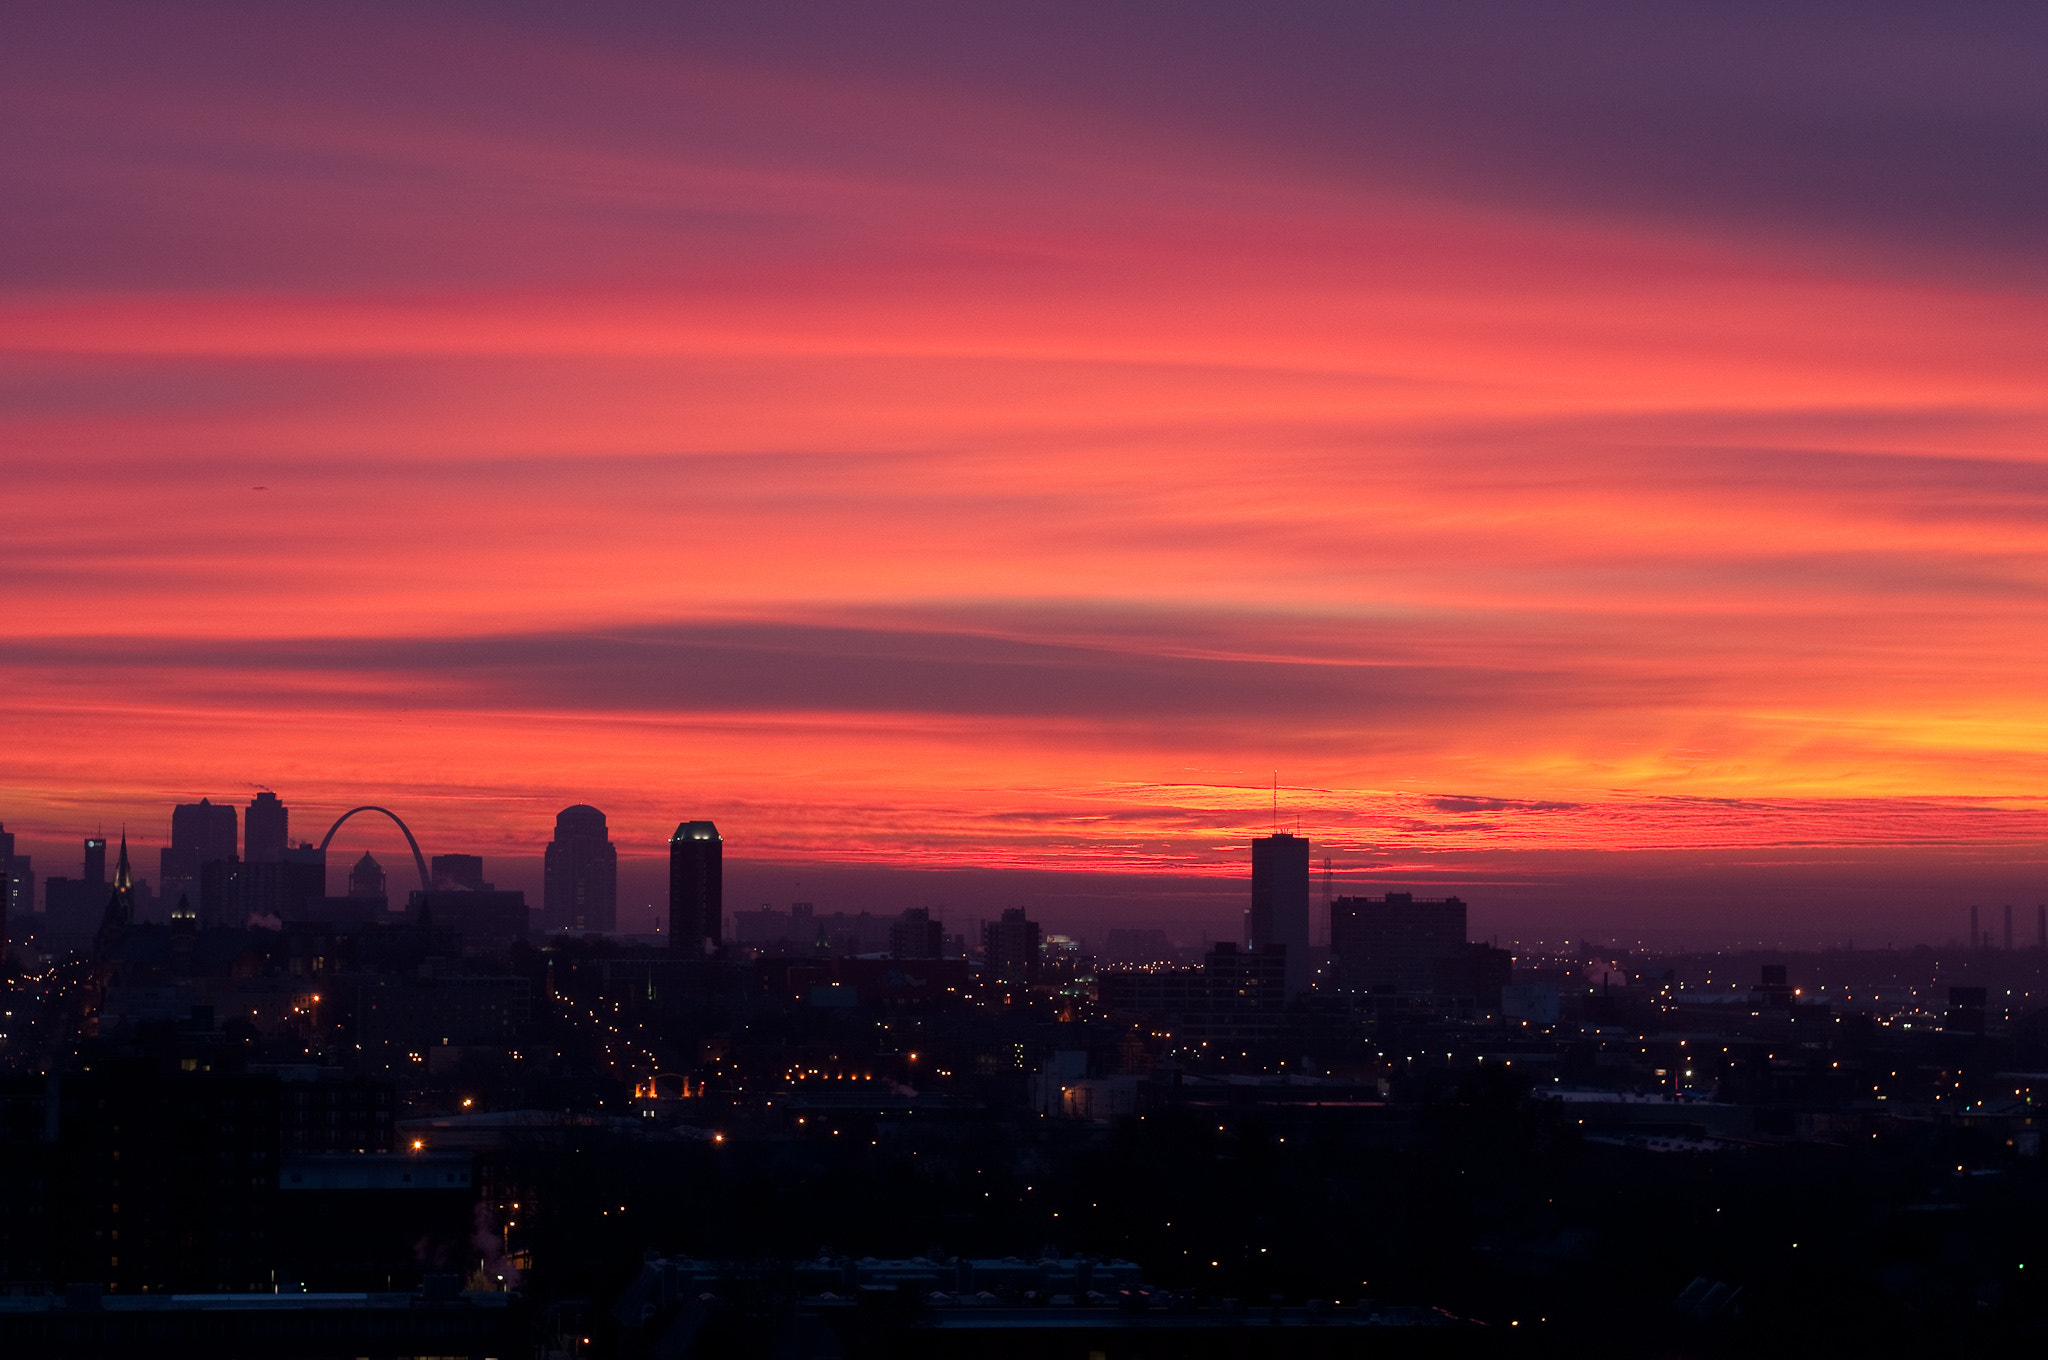 Photograph Sunrise in the City by Doug Weber on 500px